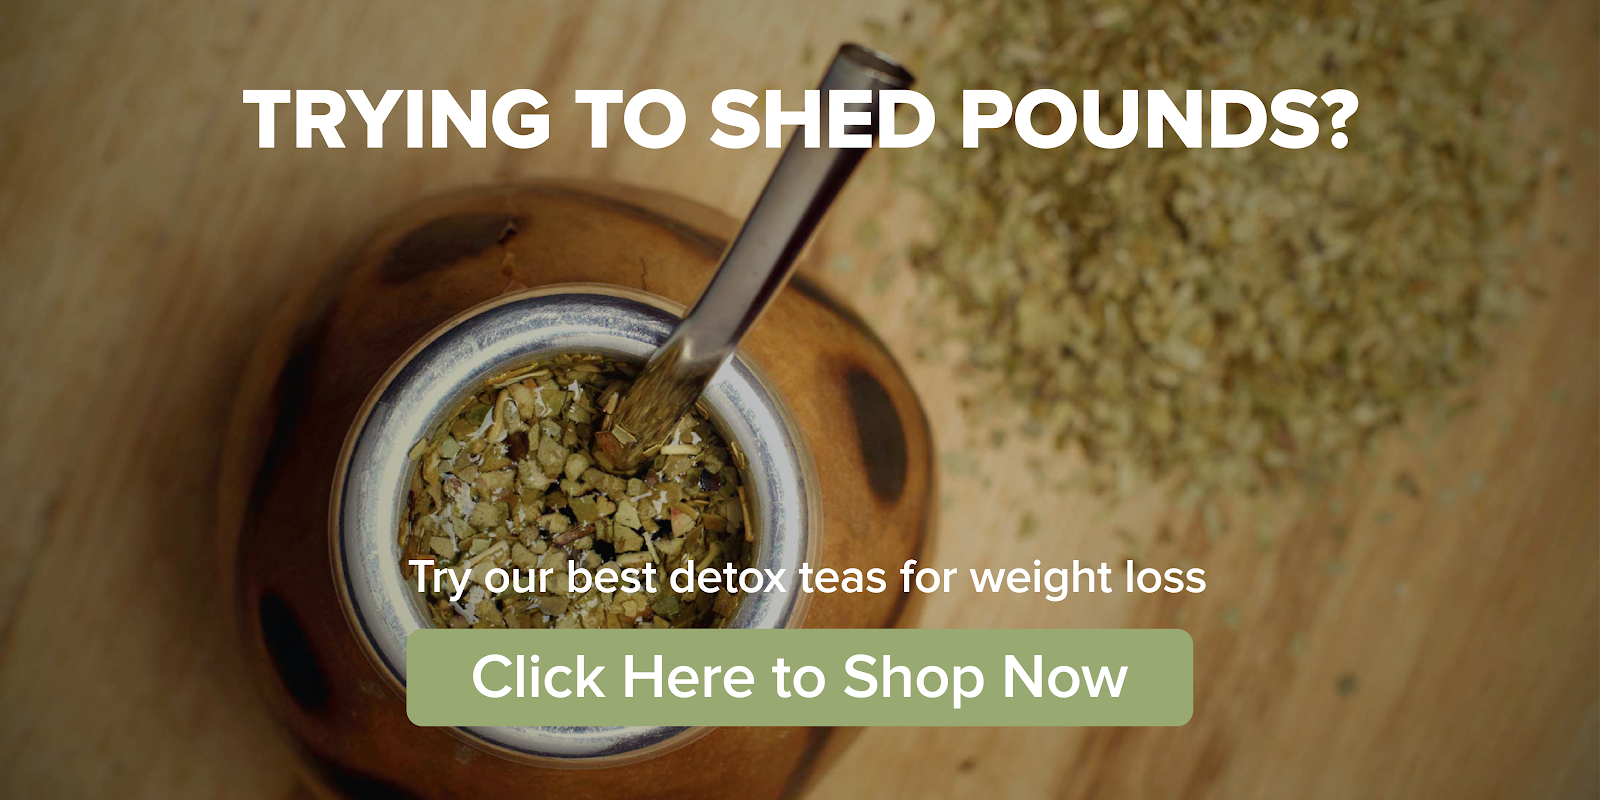 Detox teas are true teas or herbal teas that contain phytonutrients that help to improve weight loss. They do this by accelerating metabolism and increasing ...